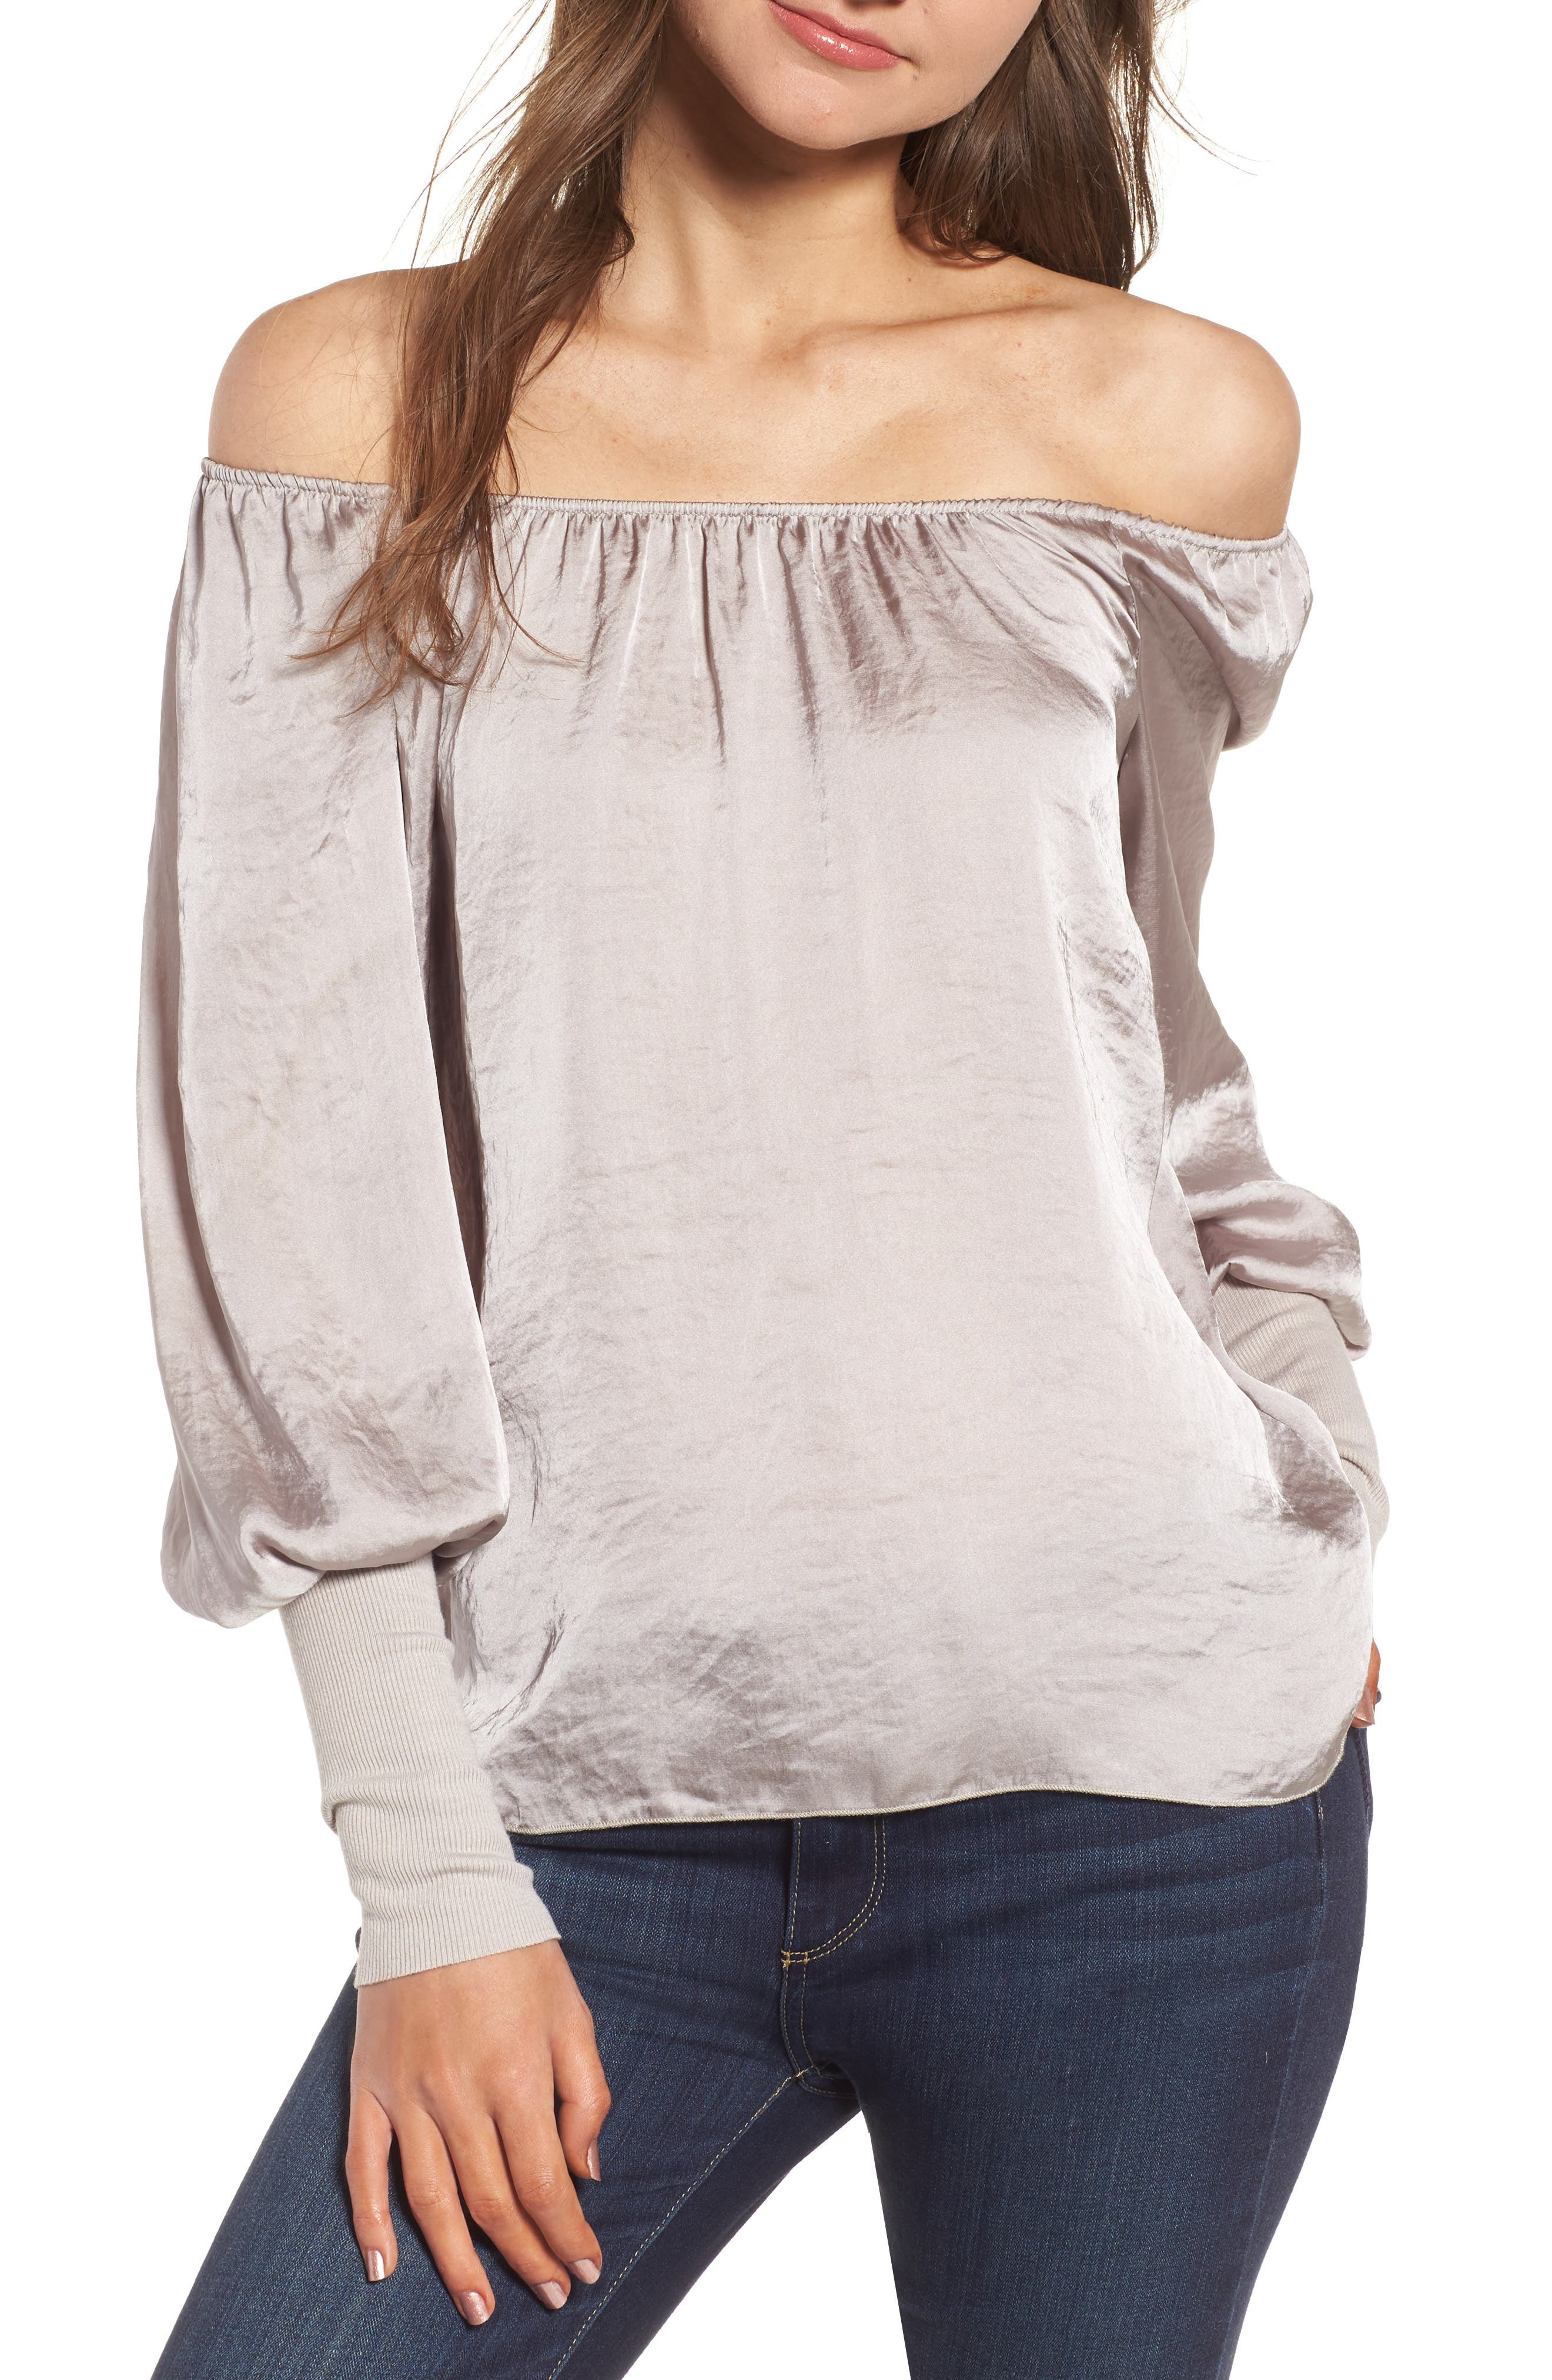 Working Title Satin Top,                             Main thumbnail 1, color,                             Taupe